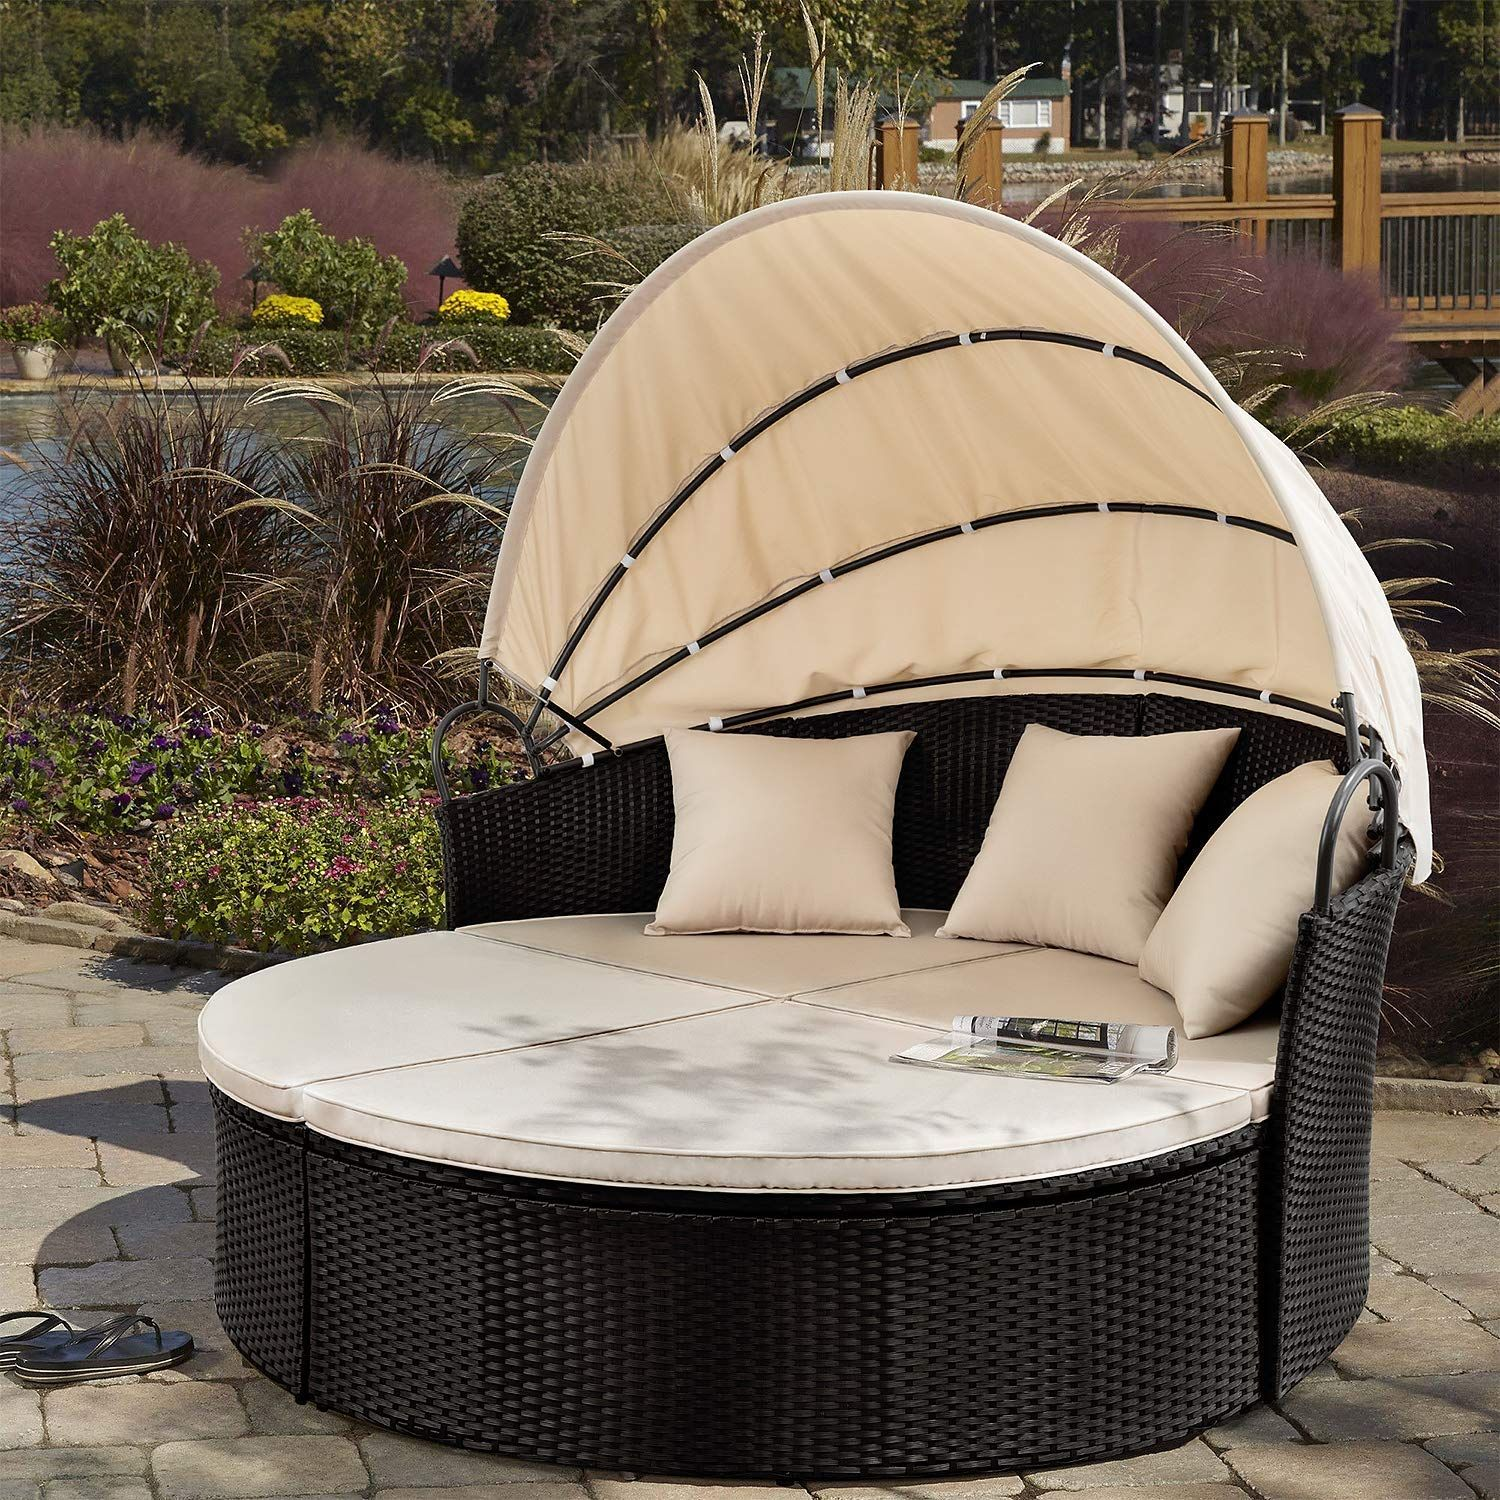 - Outdoor Wicker Daybeds & Rattan Patio Daybeds In 2020 Wicker